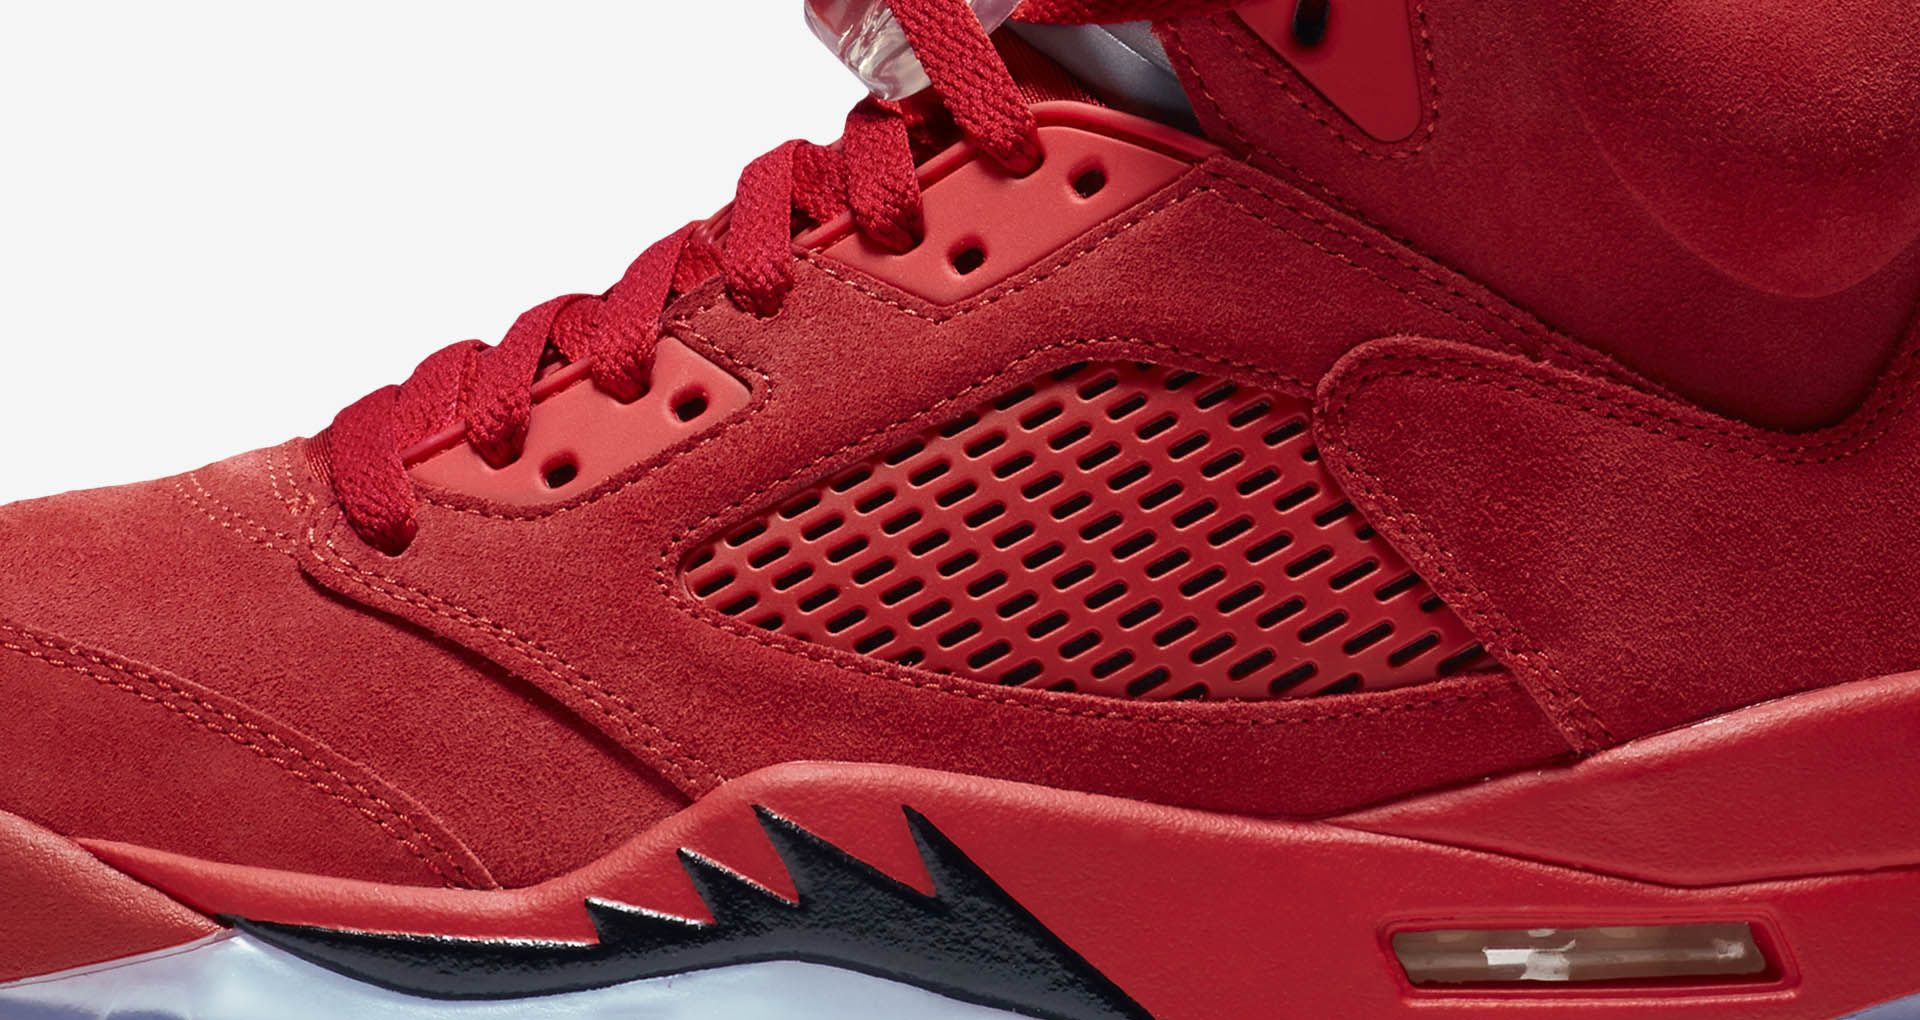 new arrival 25ff4 88259 Air Jordan 5 Retro Flight Suit 'University Red' Release Date ...